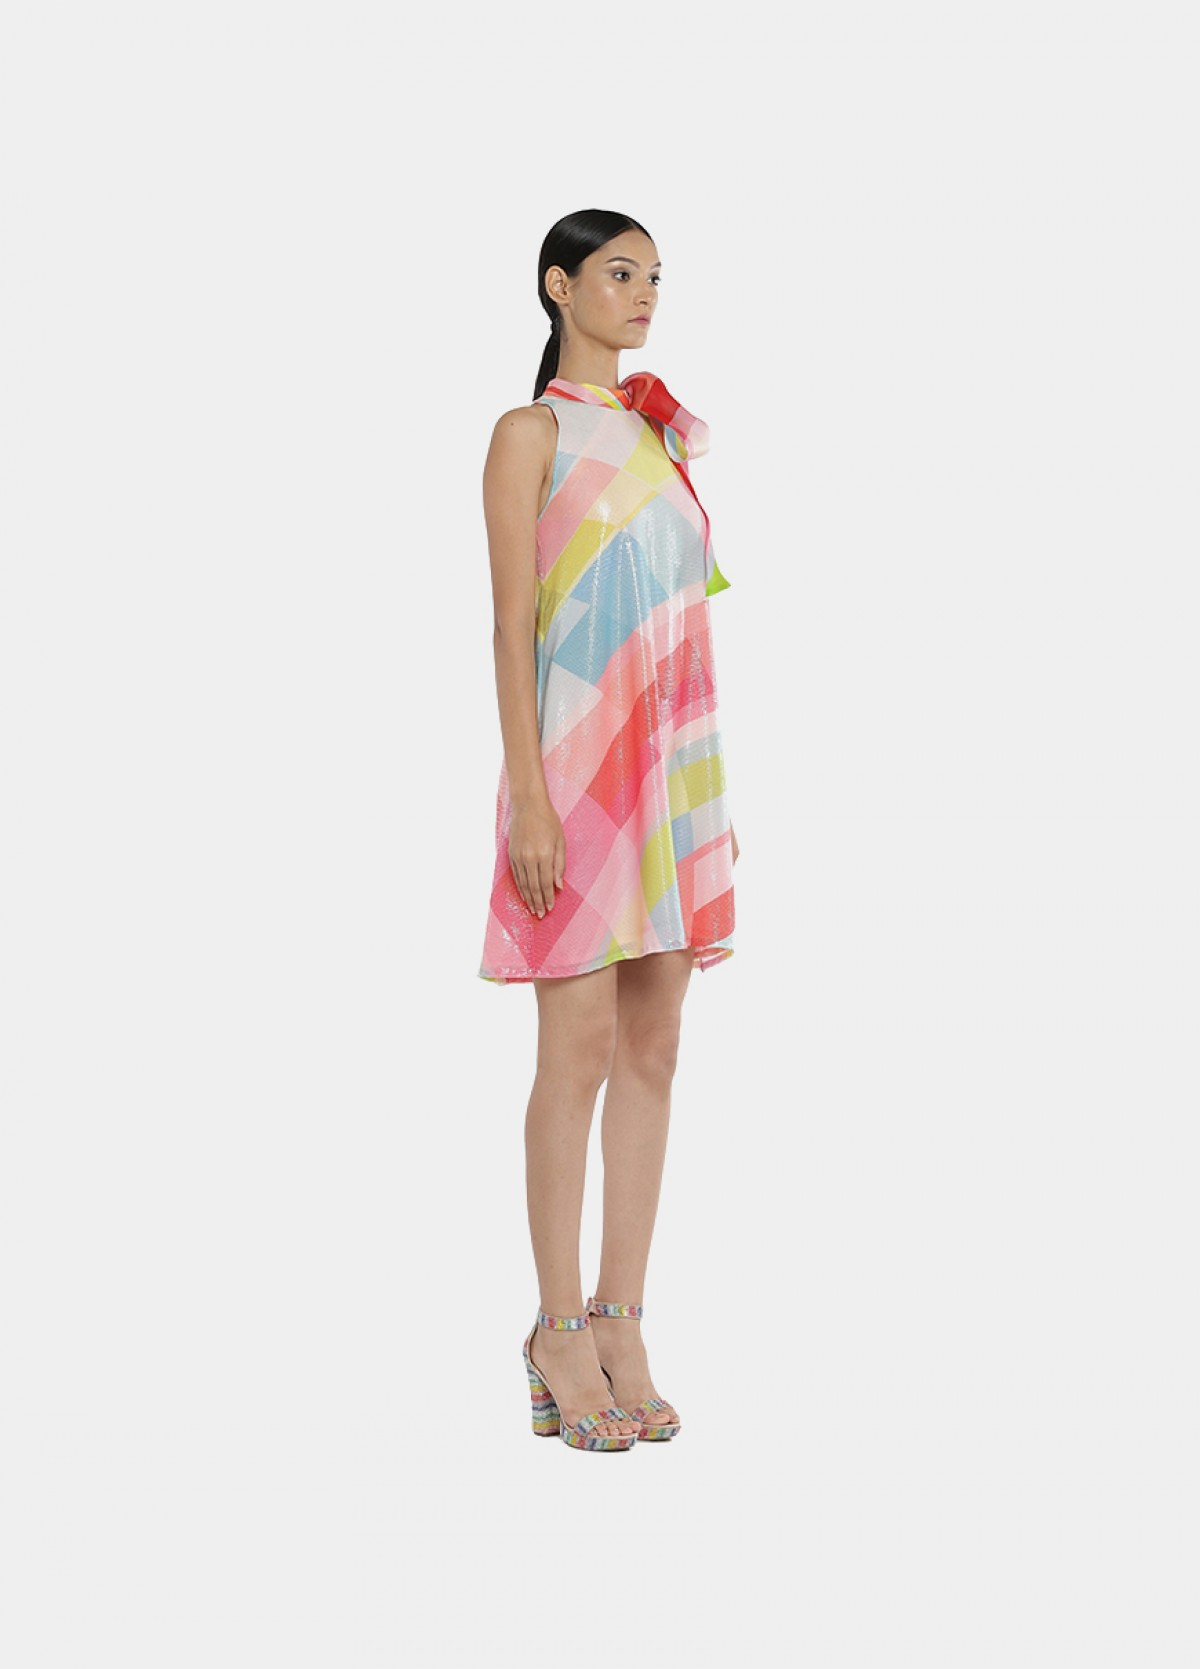 The  Popsicle Dress